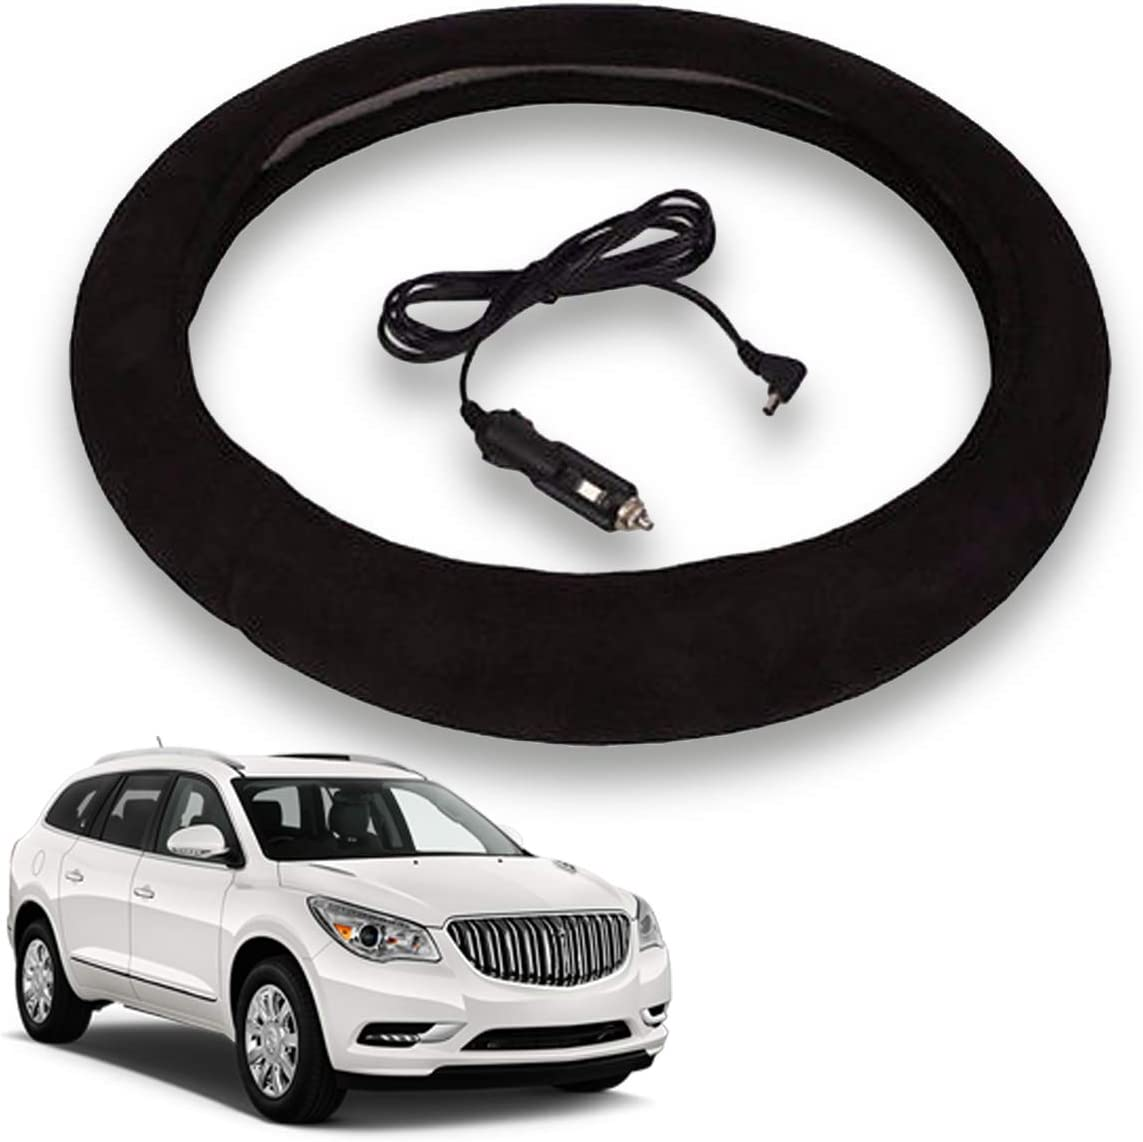 12V Black Warmer Car Steering Heater 15 inch Electrical Wheel Cover VaygWay Heated Steering Wheel Cover